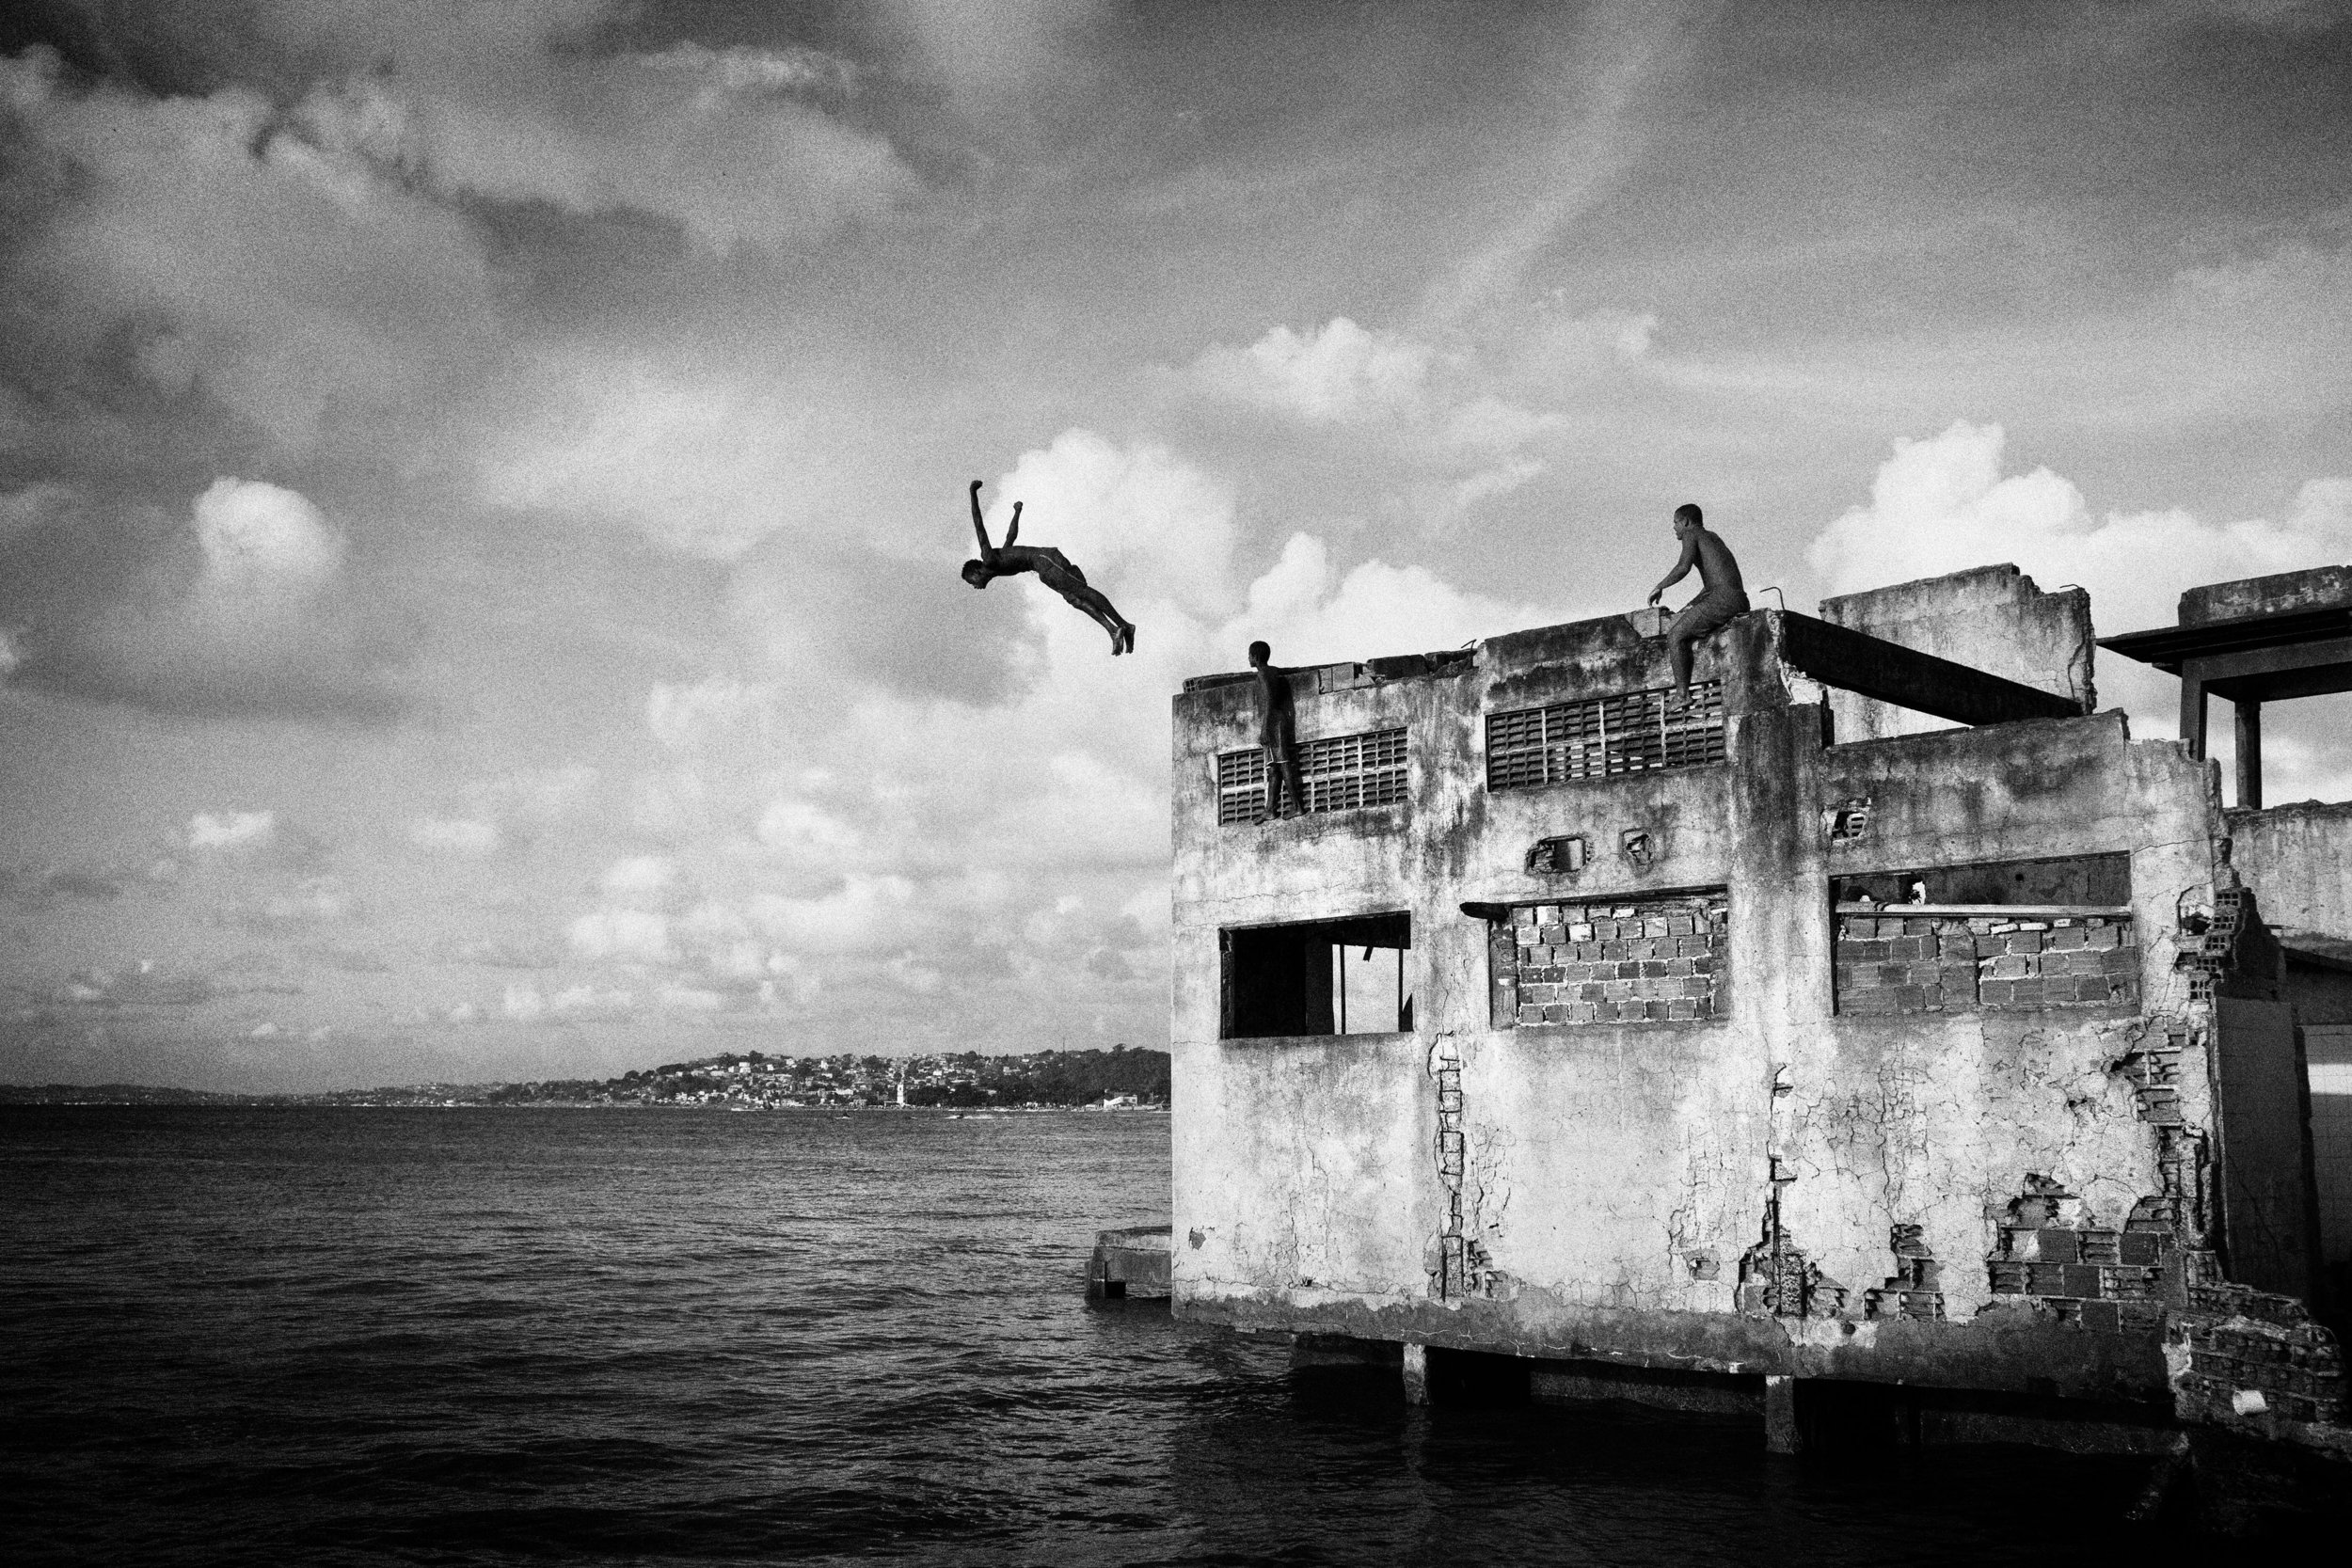 SALVADOR DE BAHIA, BRAZIL ? MARCH 20, 2011: A boy jumping from a building of the abandoned chocolate factory, on March 20, 2011 in Salvador de Bahia, Brazil. Despite the lack of socio-economic support from the government, they have managed to make a safe place for themselves to live, and form a community of their own, which is safer that the alternatives available to them. However they are currently being evicted by the government due to being there illegally. (Photo by Sebastian Liste/NOOR)